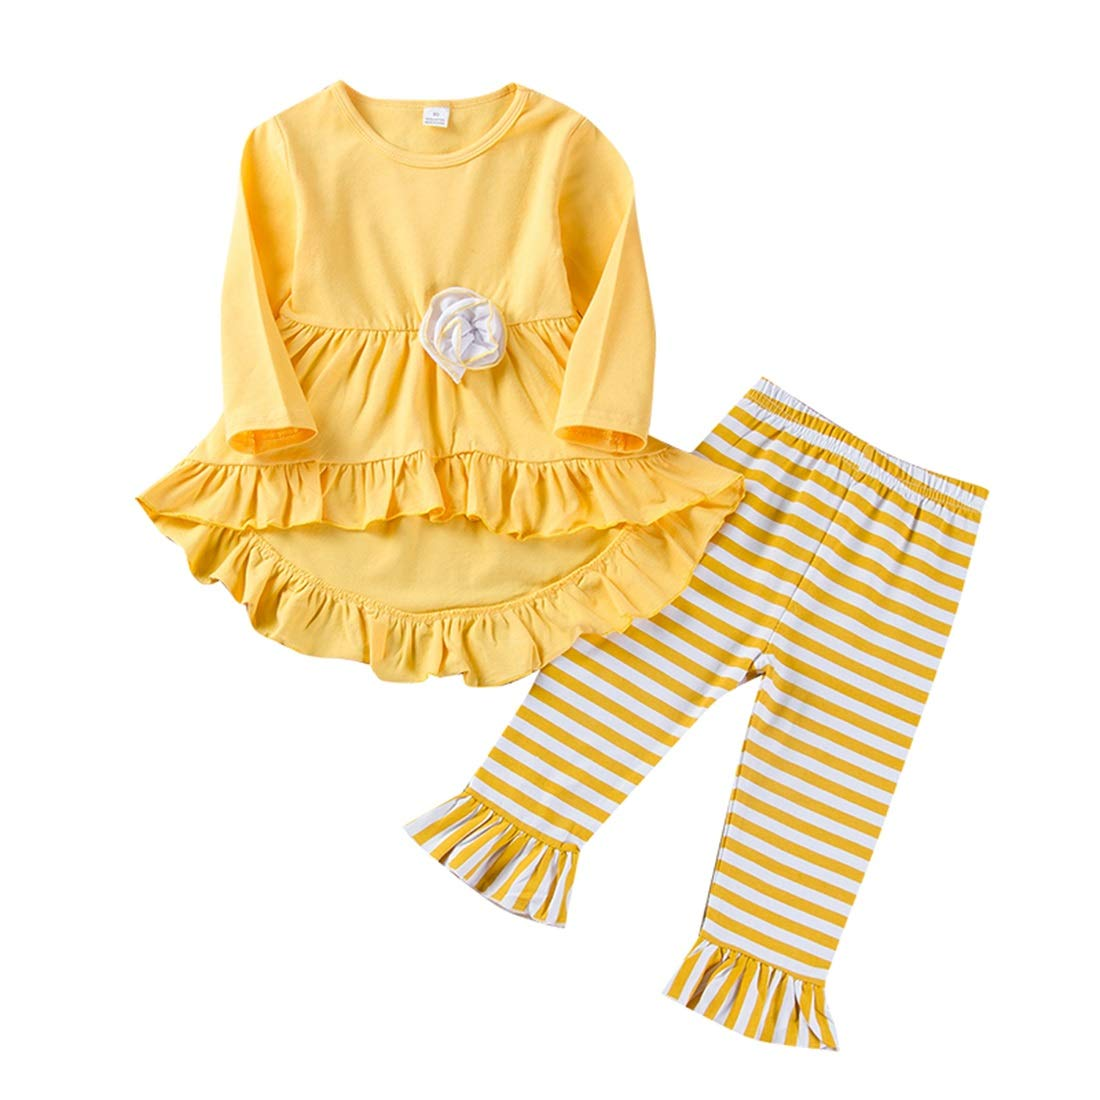 Toddler Girl Outfit Long Sleeve Ruffle Dress Tops Pants Fall Spring Clothes Set